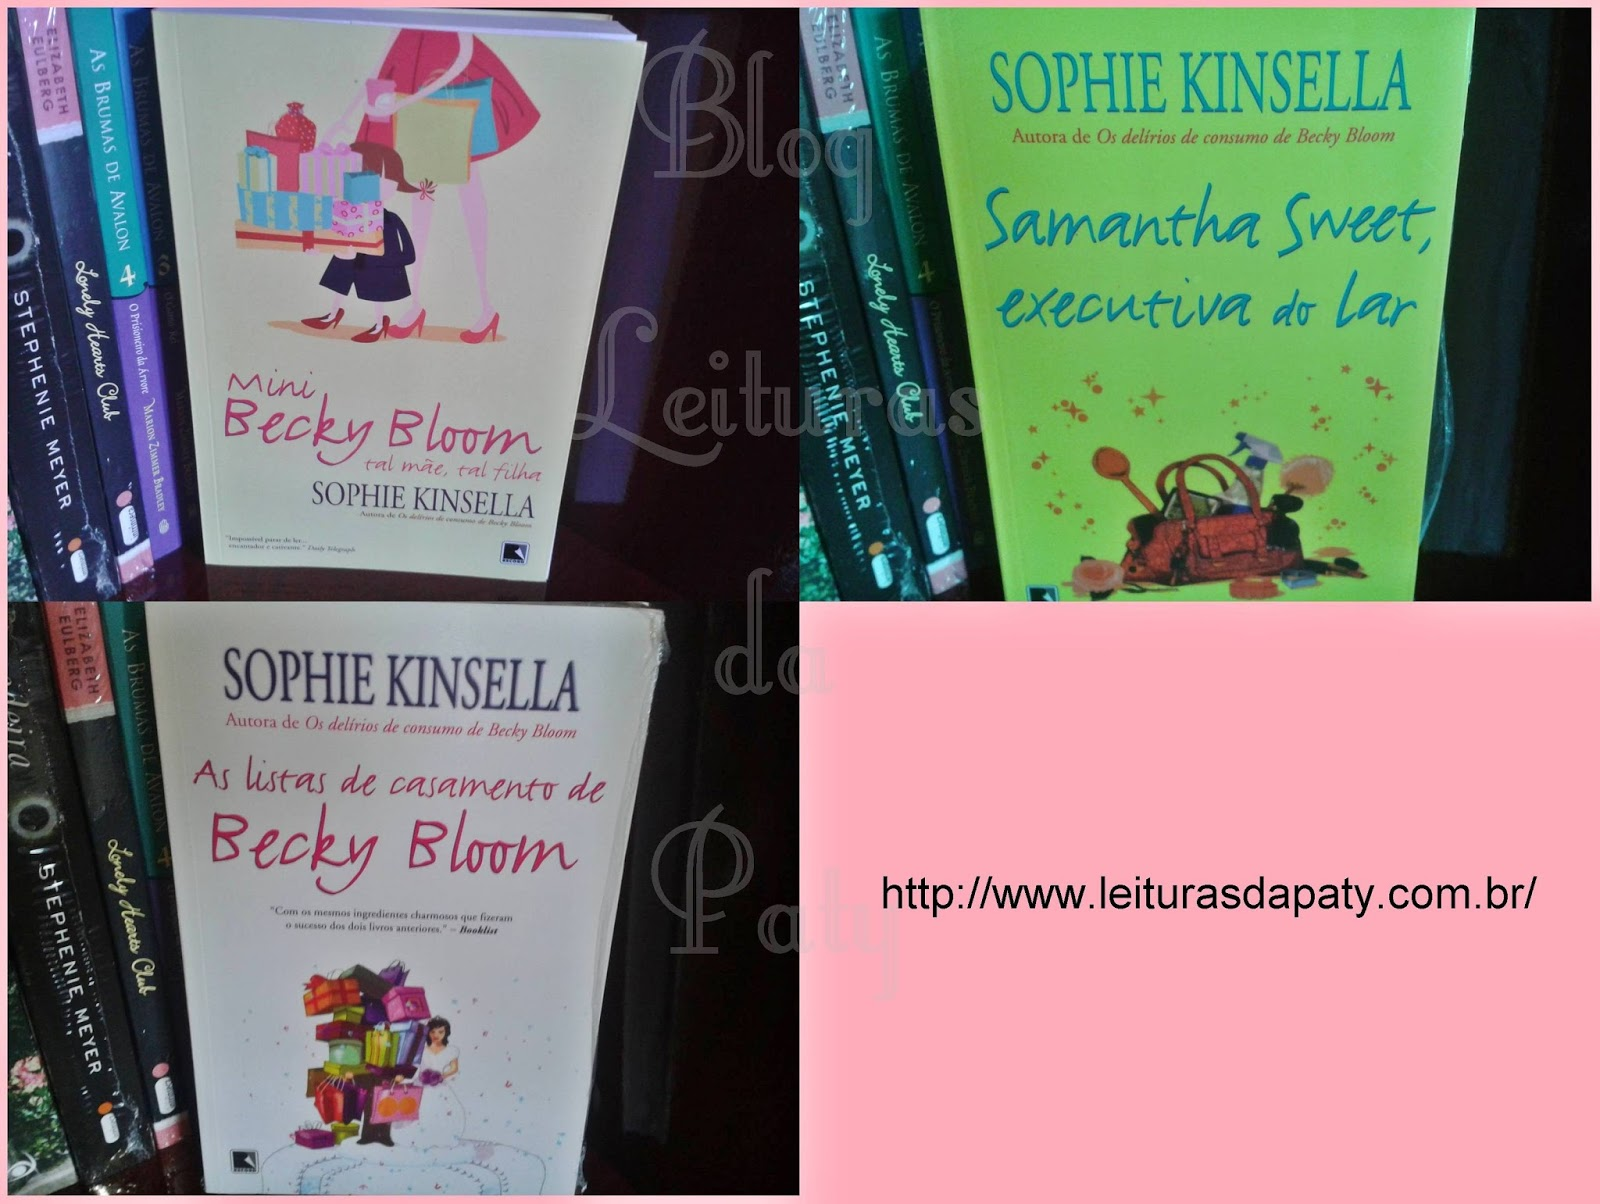 Livro Mini Becky Bloom - Sophie Kinsella-Galera Record - Blog Leituras da Paty